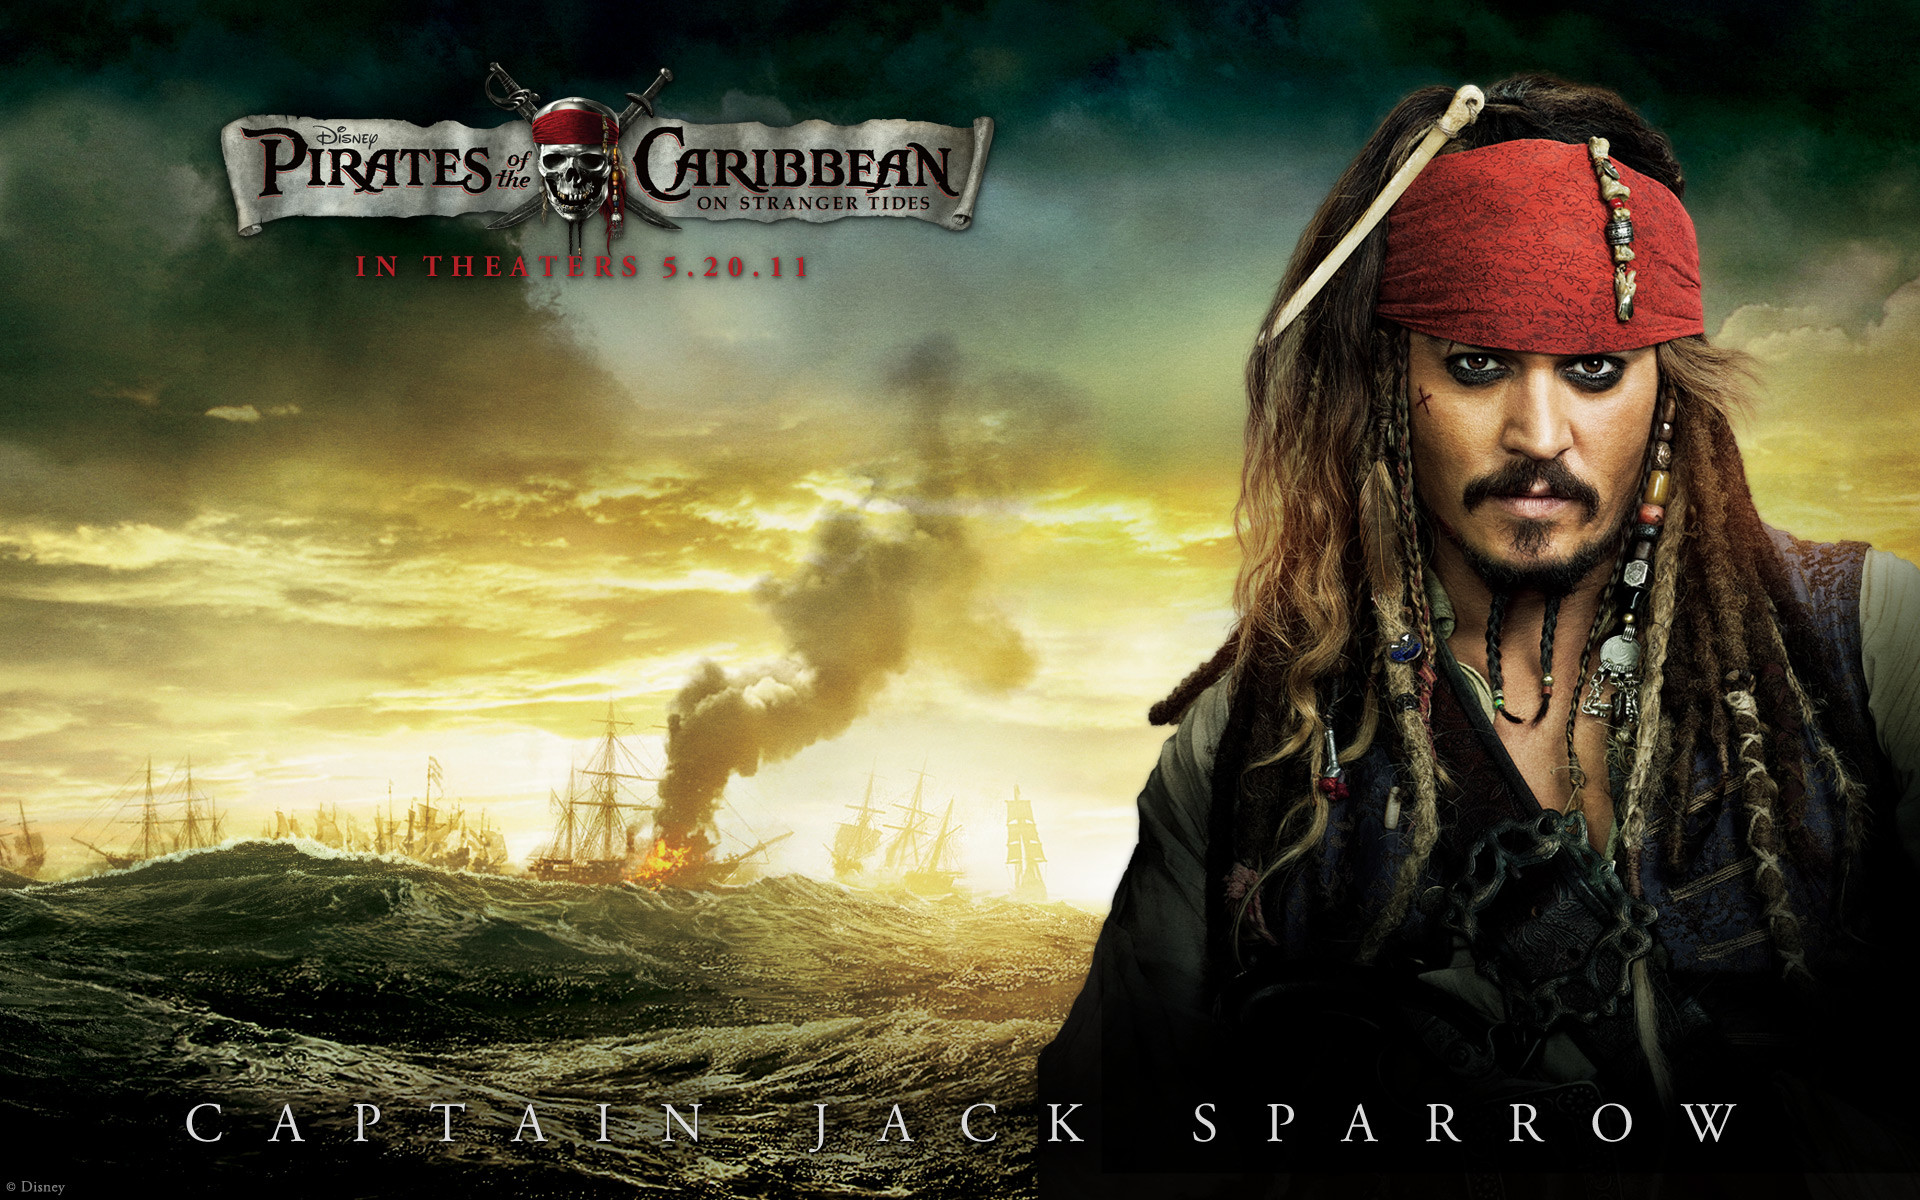 Pirates of the Caribbean images POTC wallpapers HD wallpaper and | HD  Wallpapers | Pinterest | Caribbean and Wallpaper